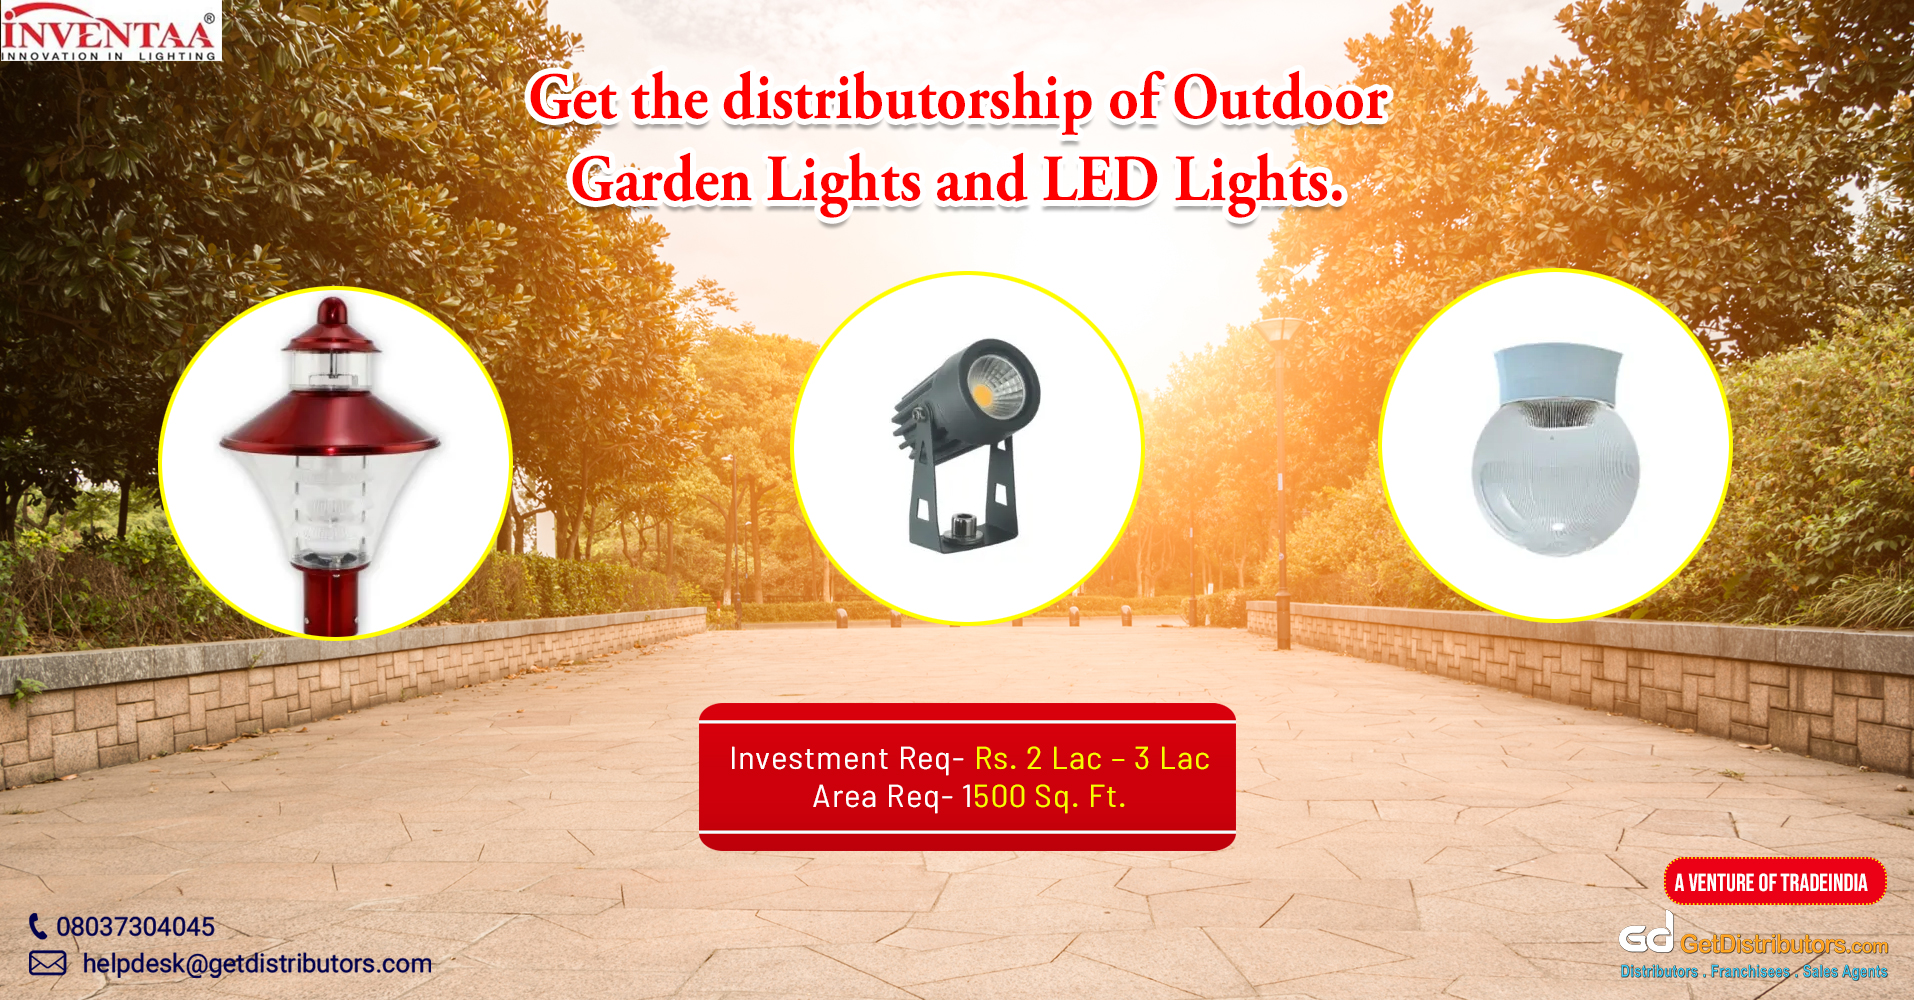 A wide range of outdoor lighting, residential lighting, and allied products for distribution